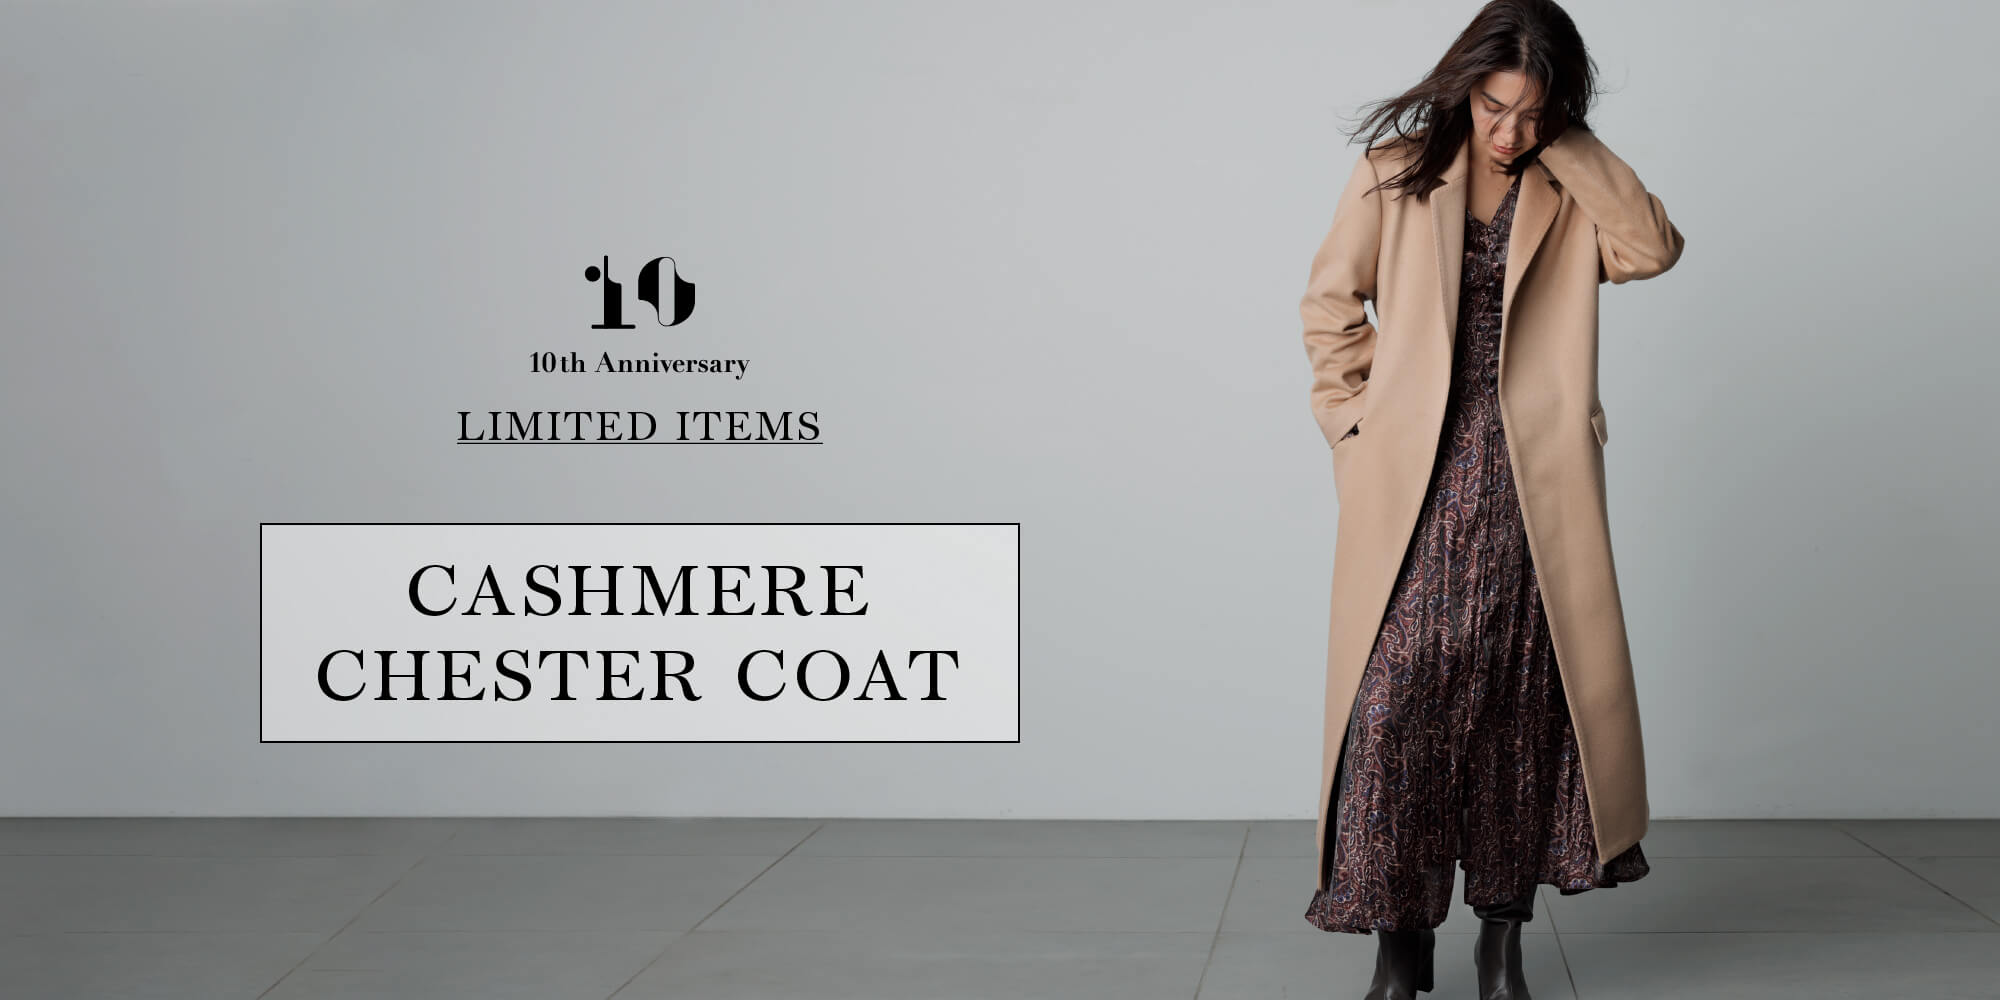 10th ANNIVERSARY LIMITED ITEMS collaboration with Mary al terna